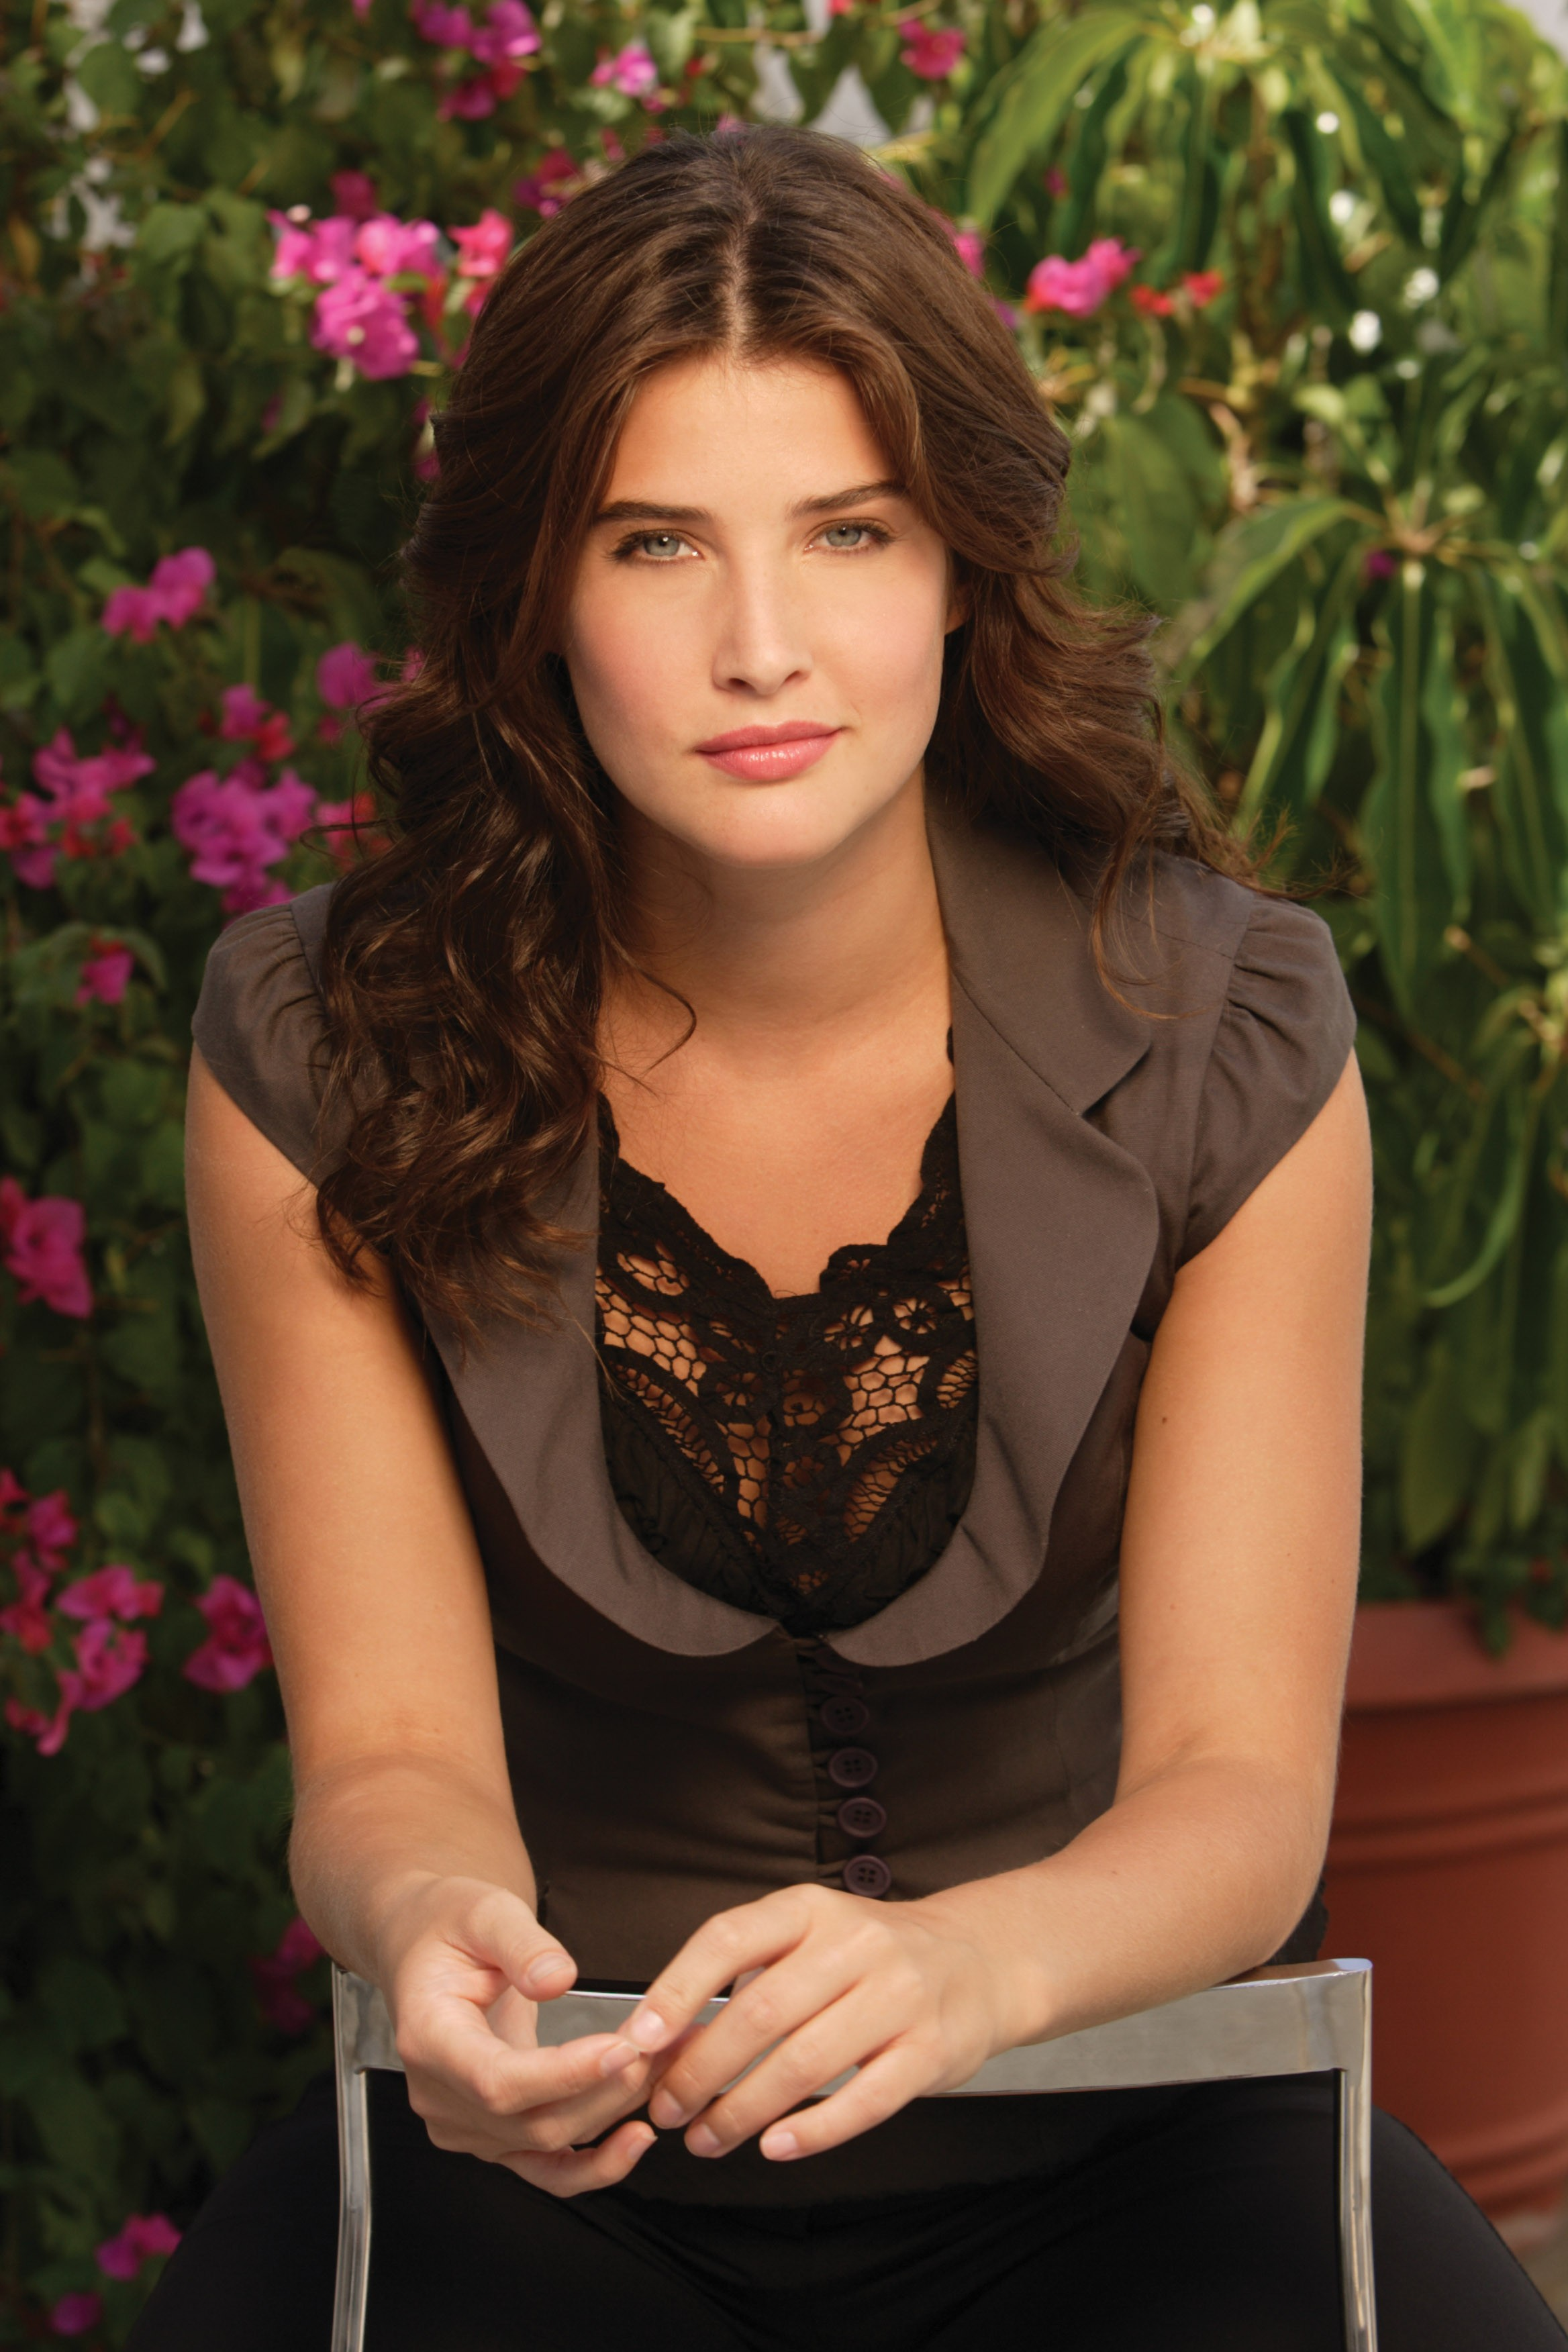 cobie smulders Flowers chairs HD Wallpaper